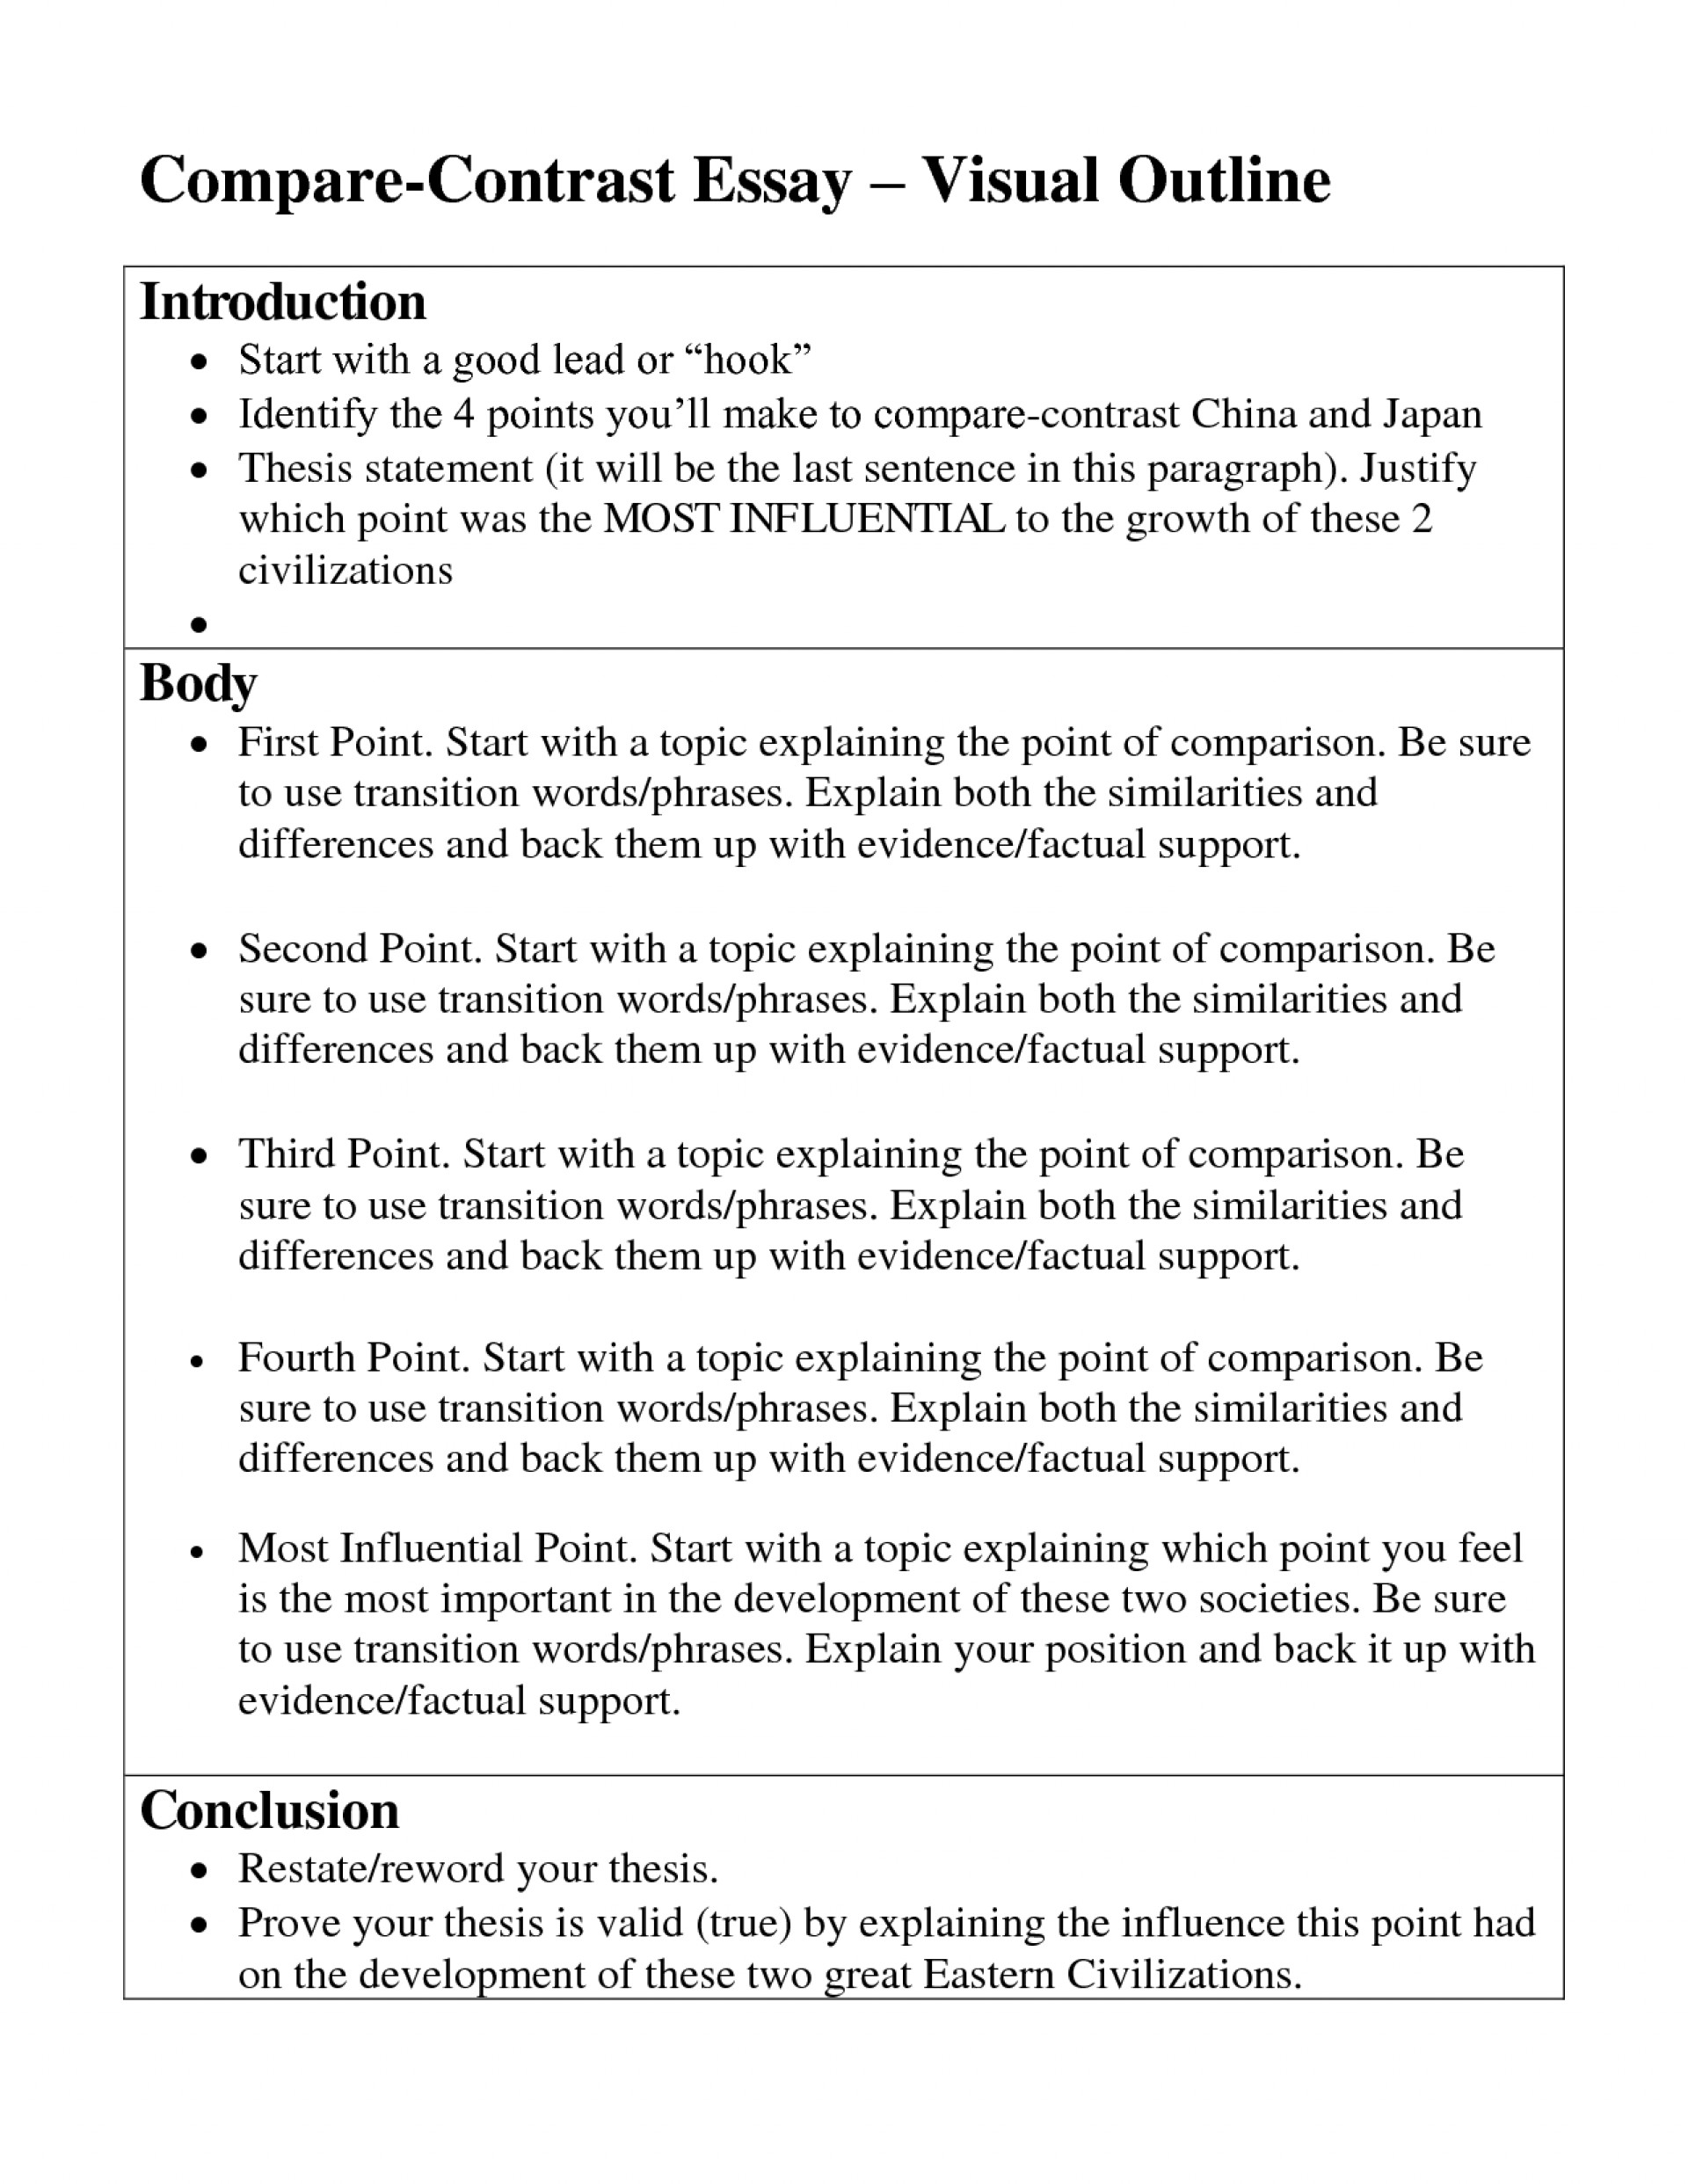 007 How To Conclude Compare And Contrast Essay Example Fantastic A Start Writing Comparison Write Begin 1920